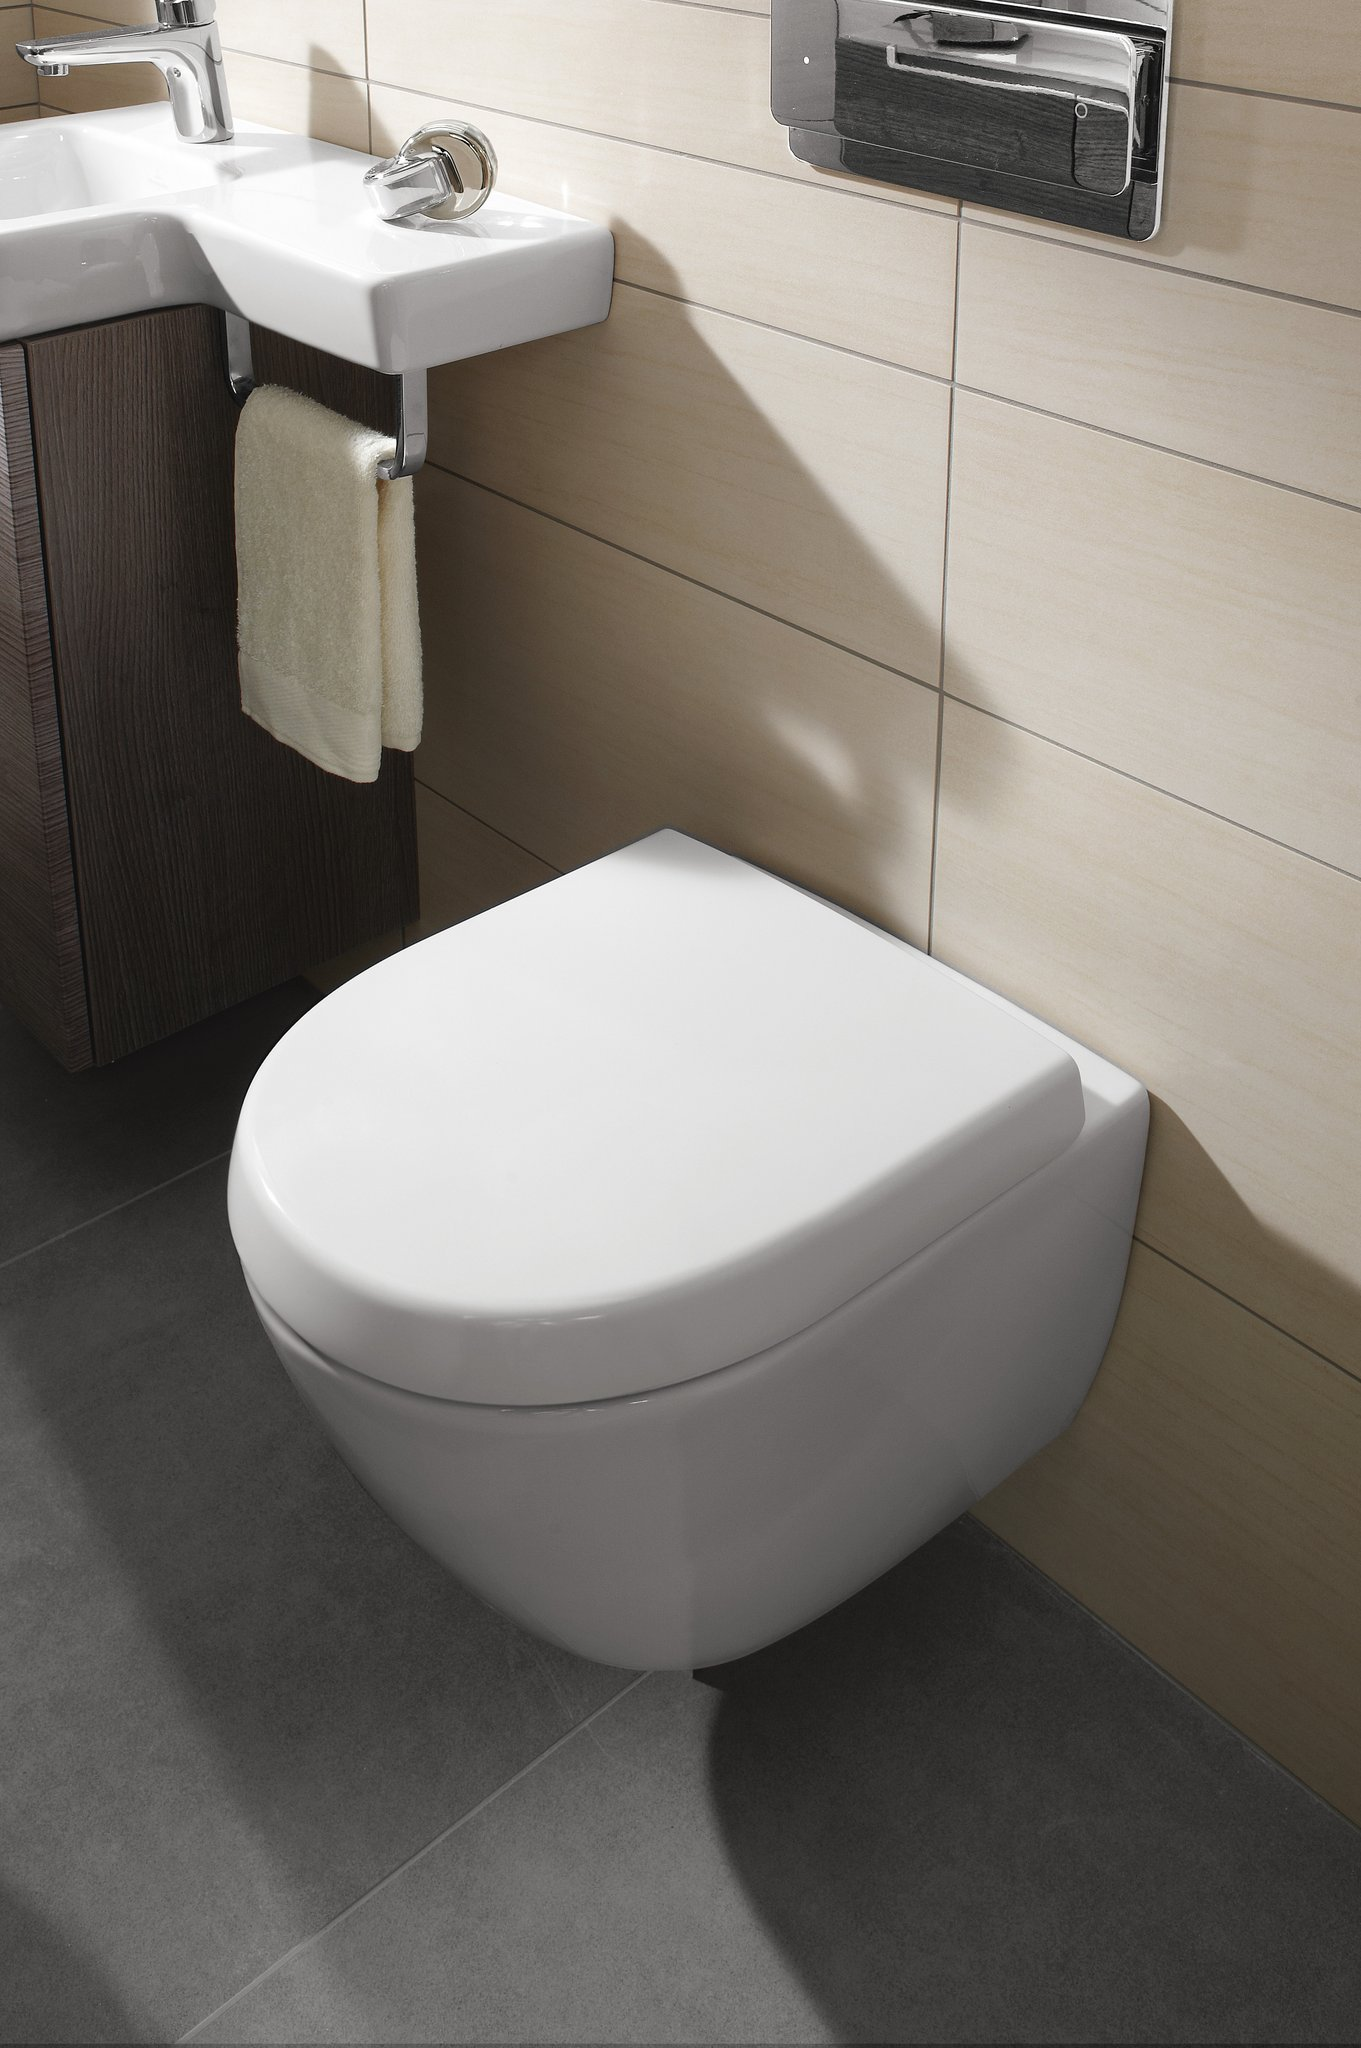 Subway 2 0 Compact Washdown Toilet Oval 560610 Villeroy